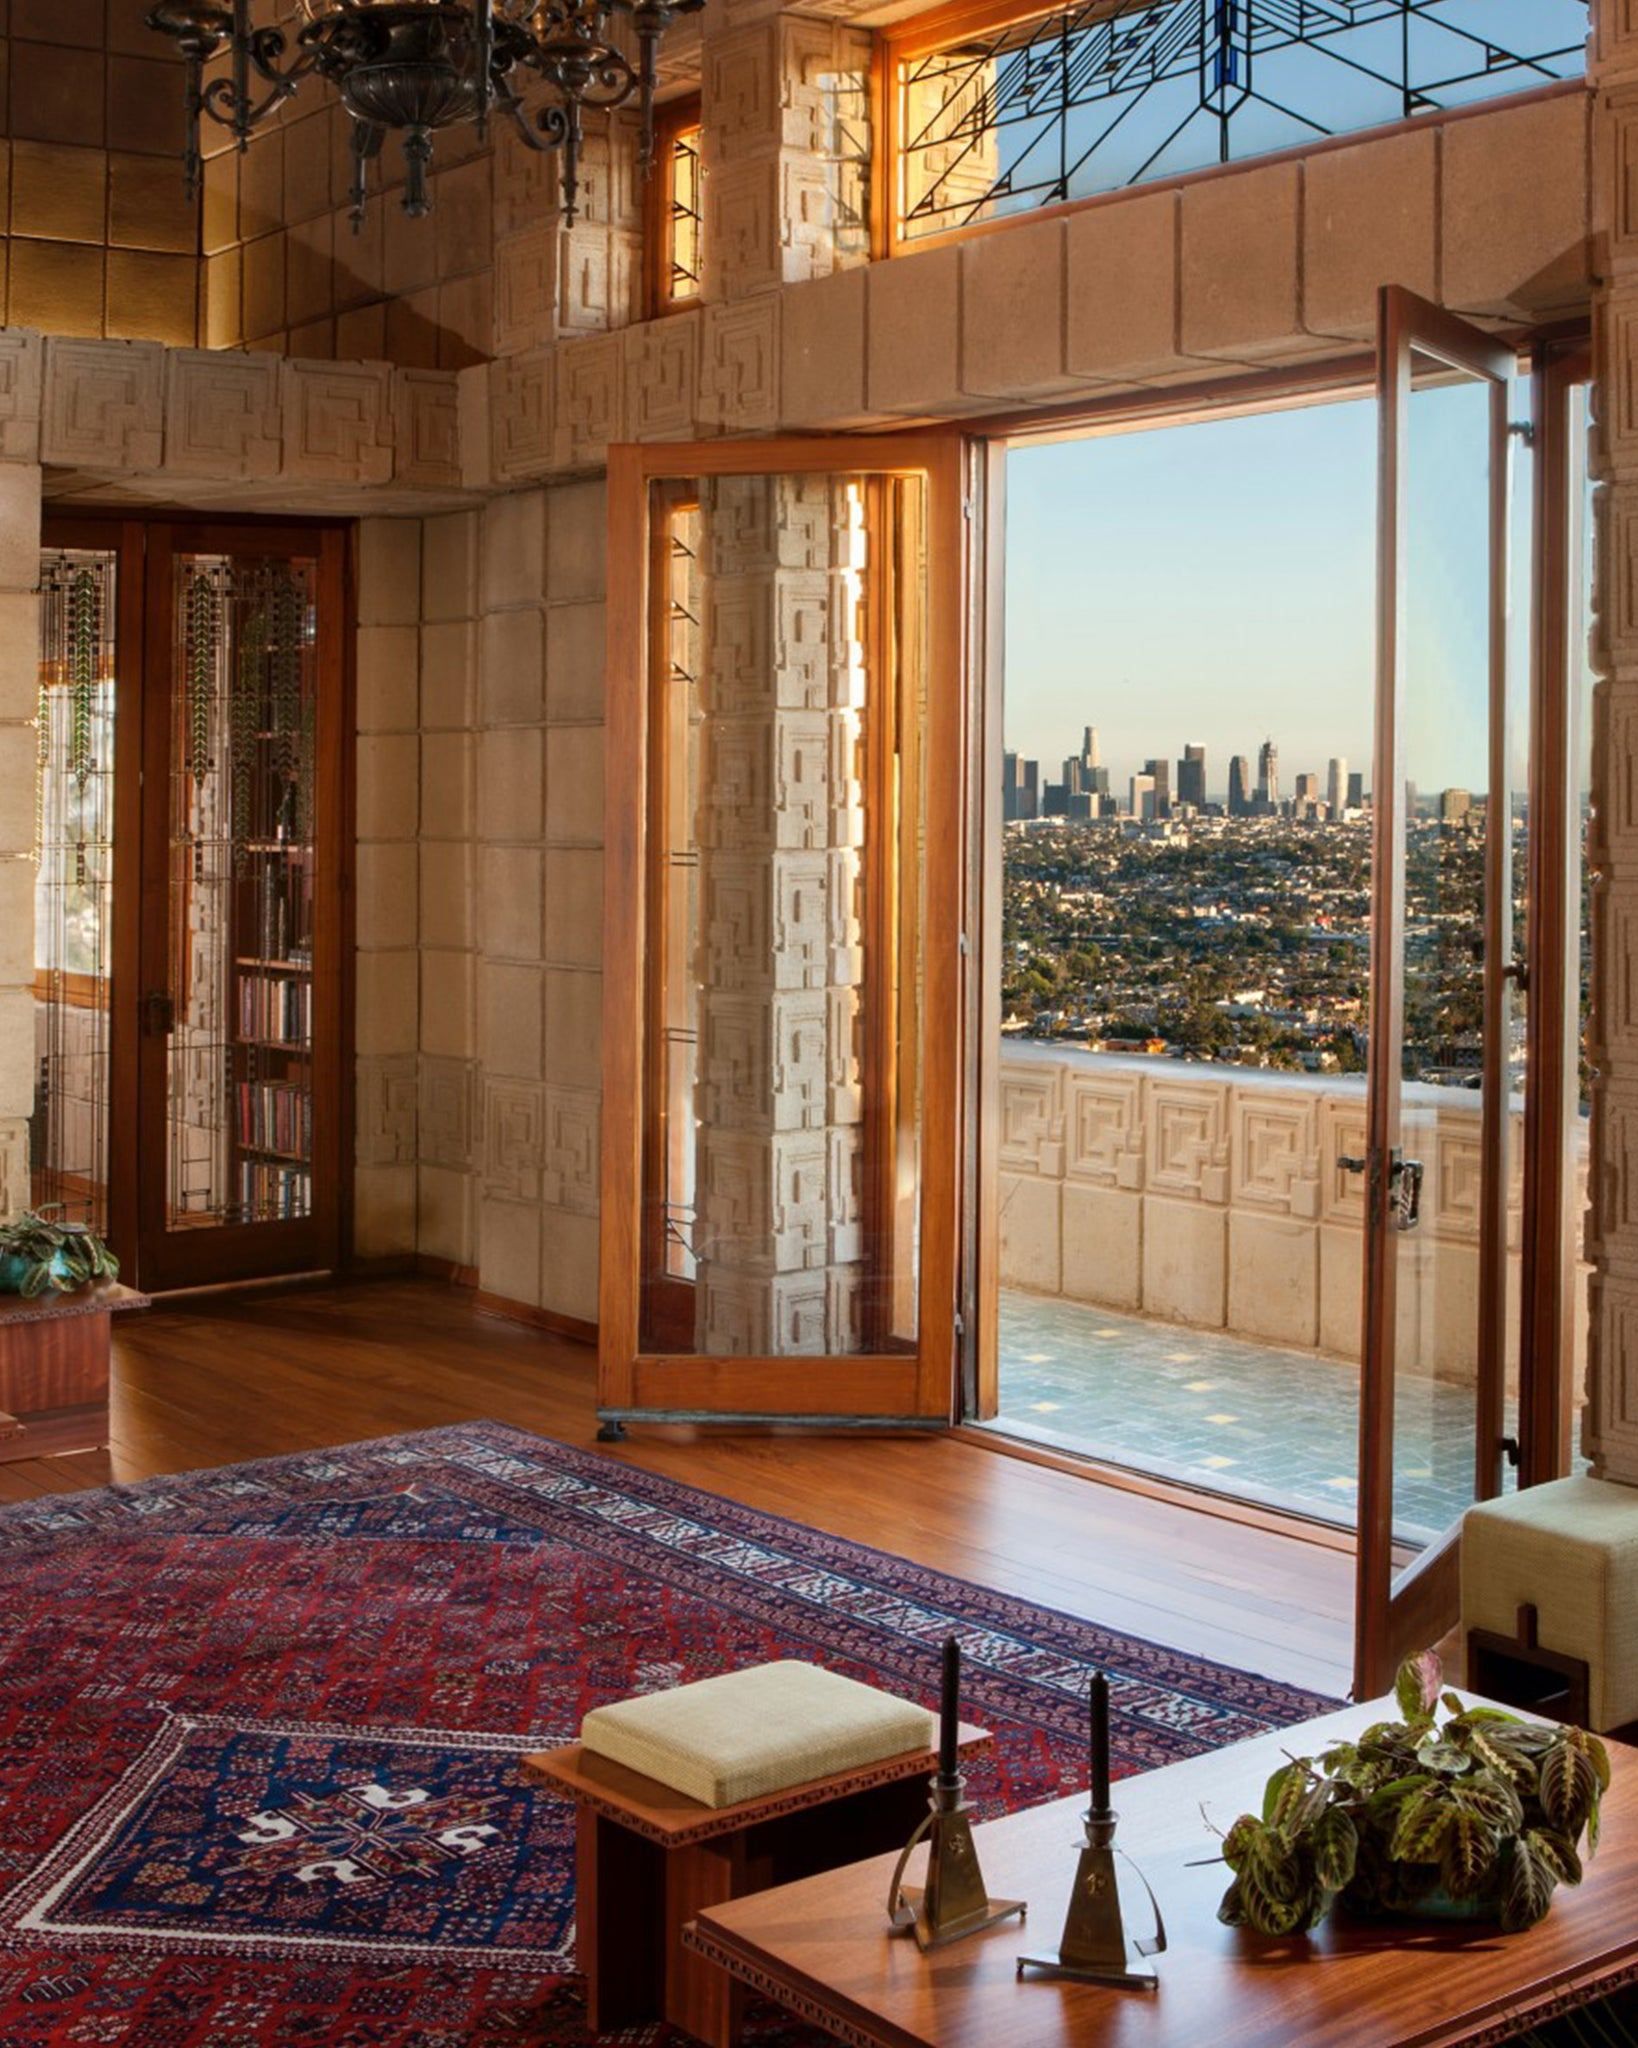 Ennis House designed by Frank Lloyd Wright